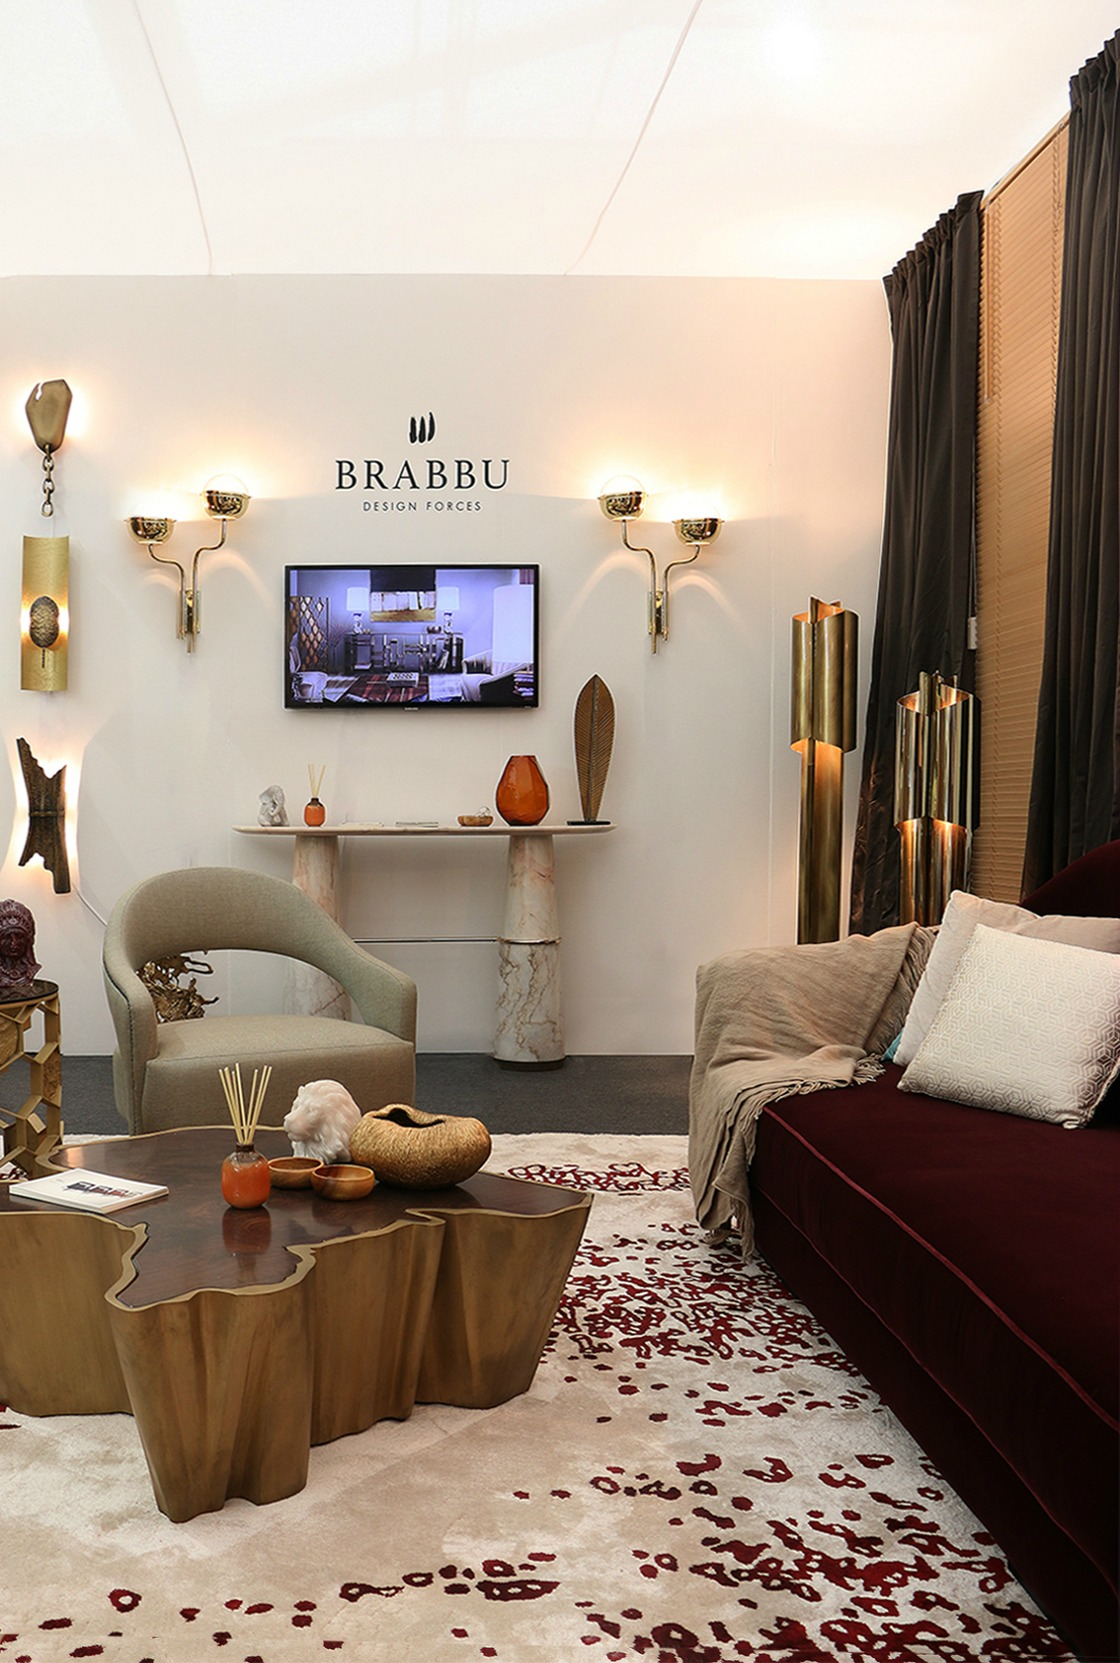 WHY YOU SHOULD ATTEND THE 40TH EDITION OF DECOREX